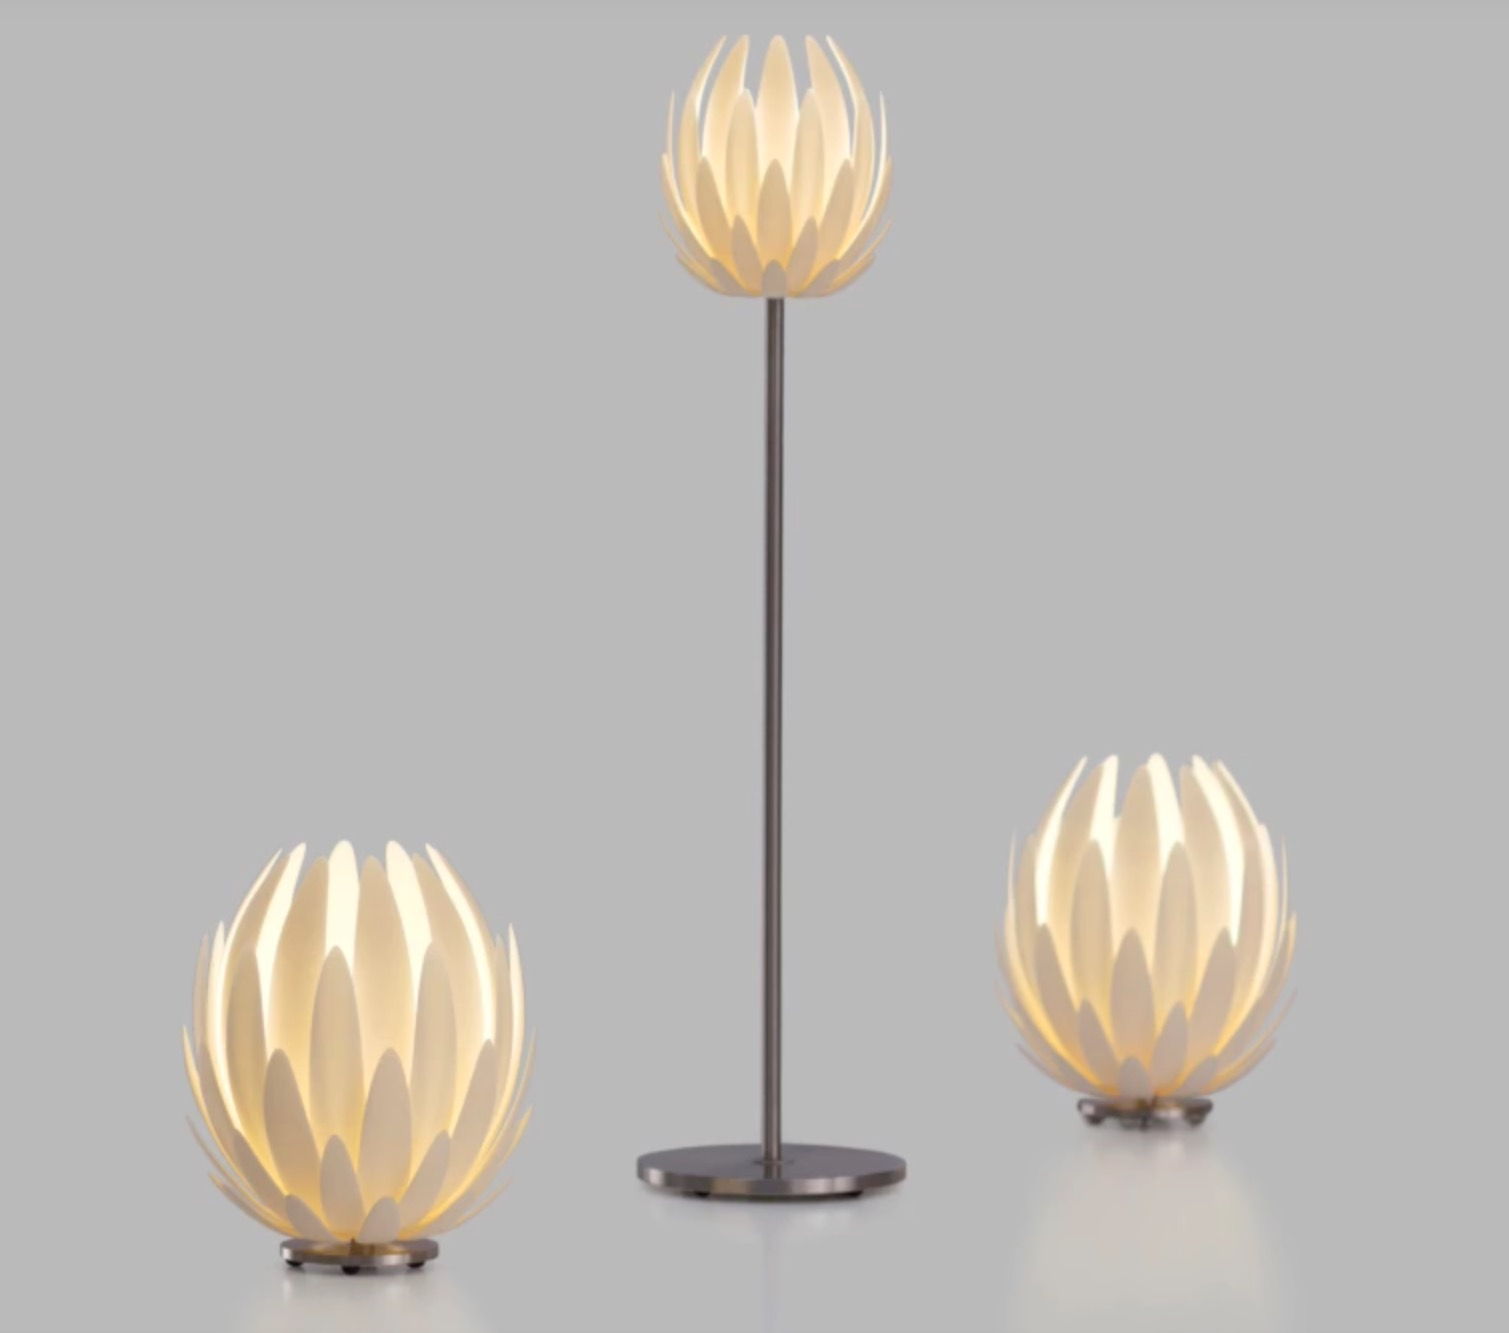 The 3D printed Lily Lamp mounted and lit